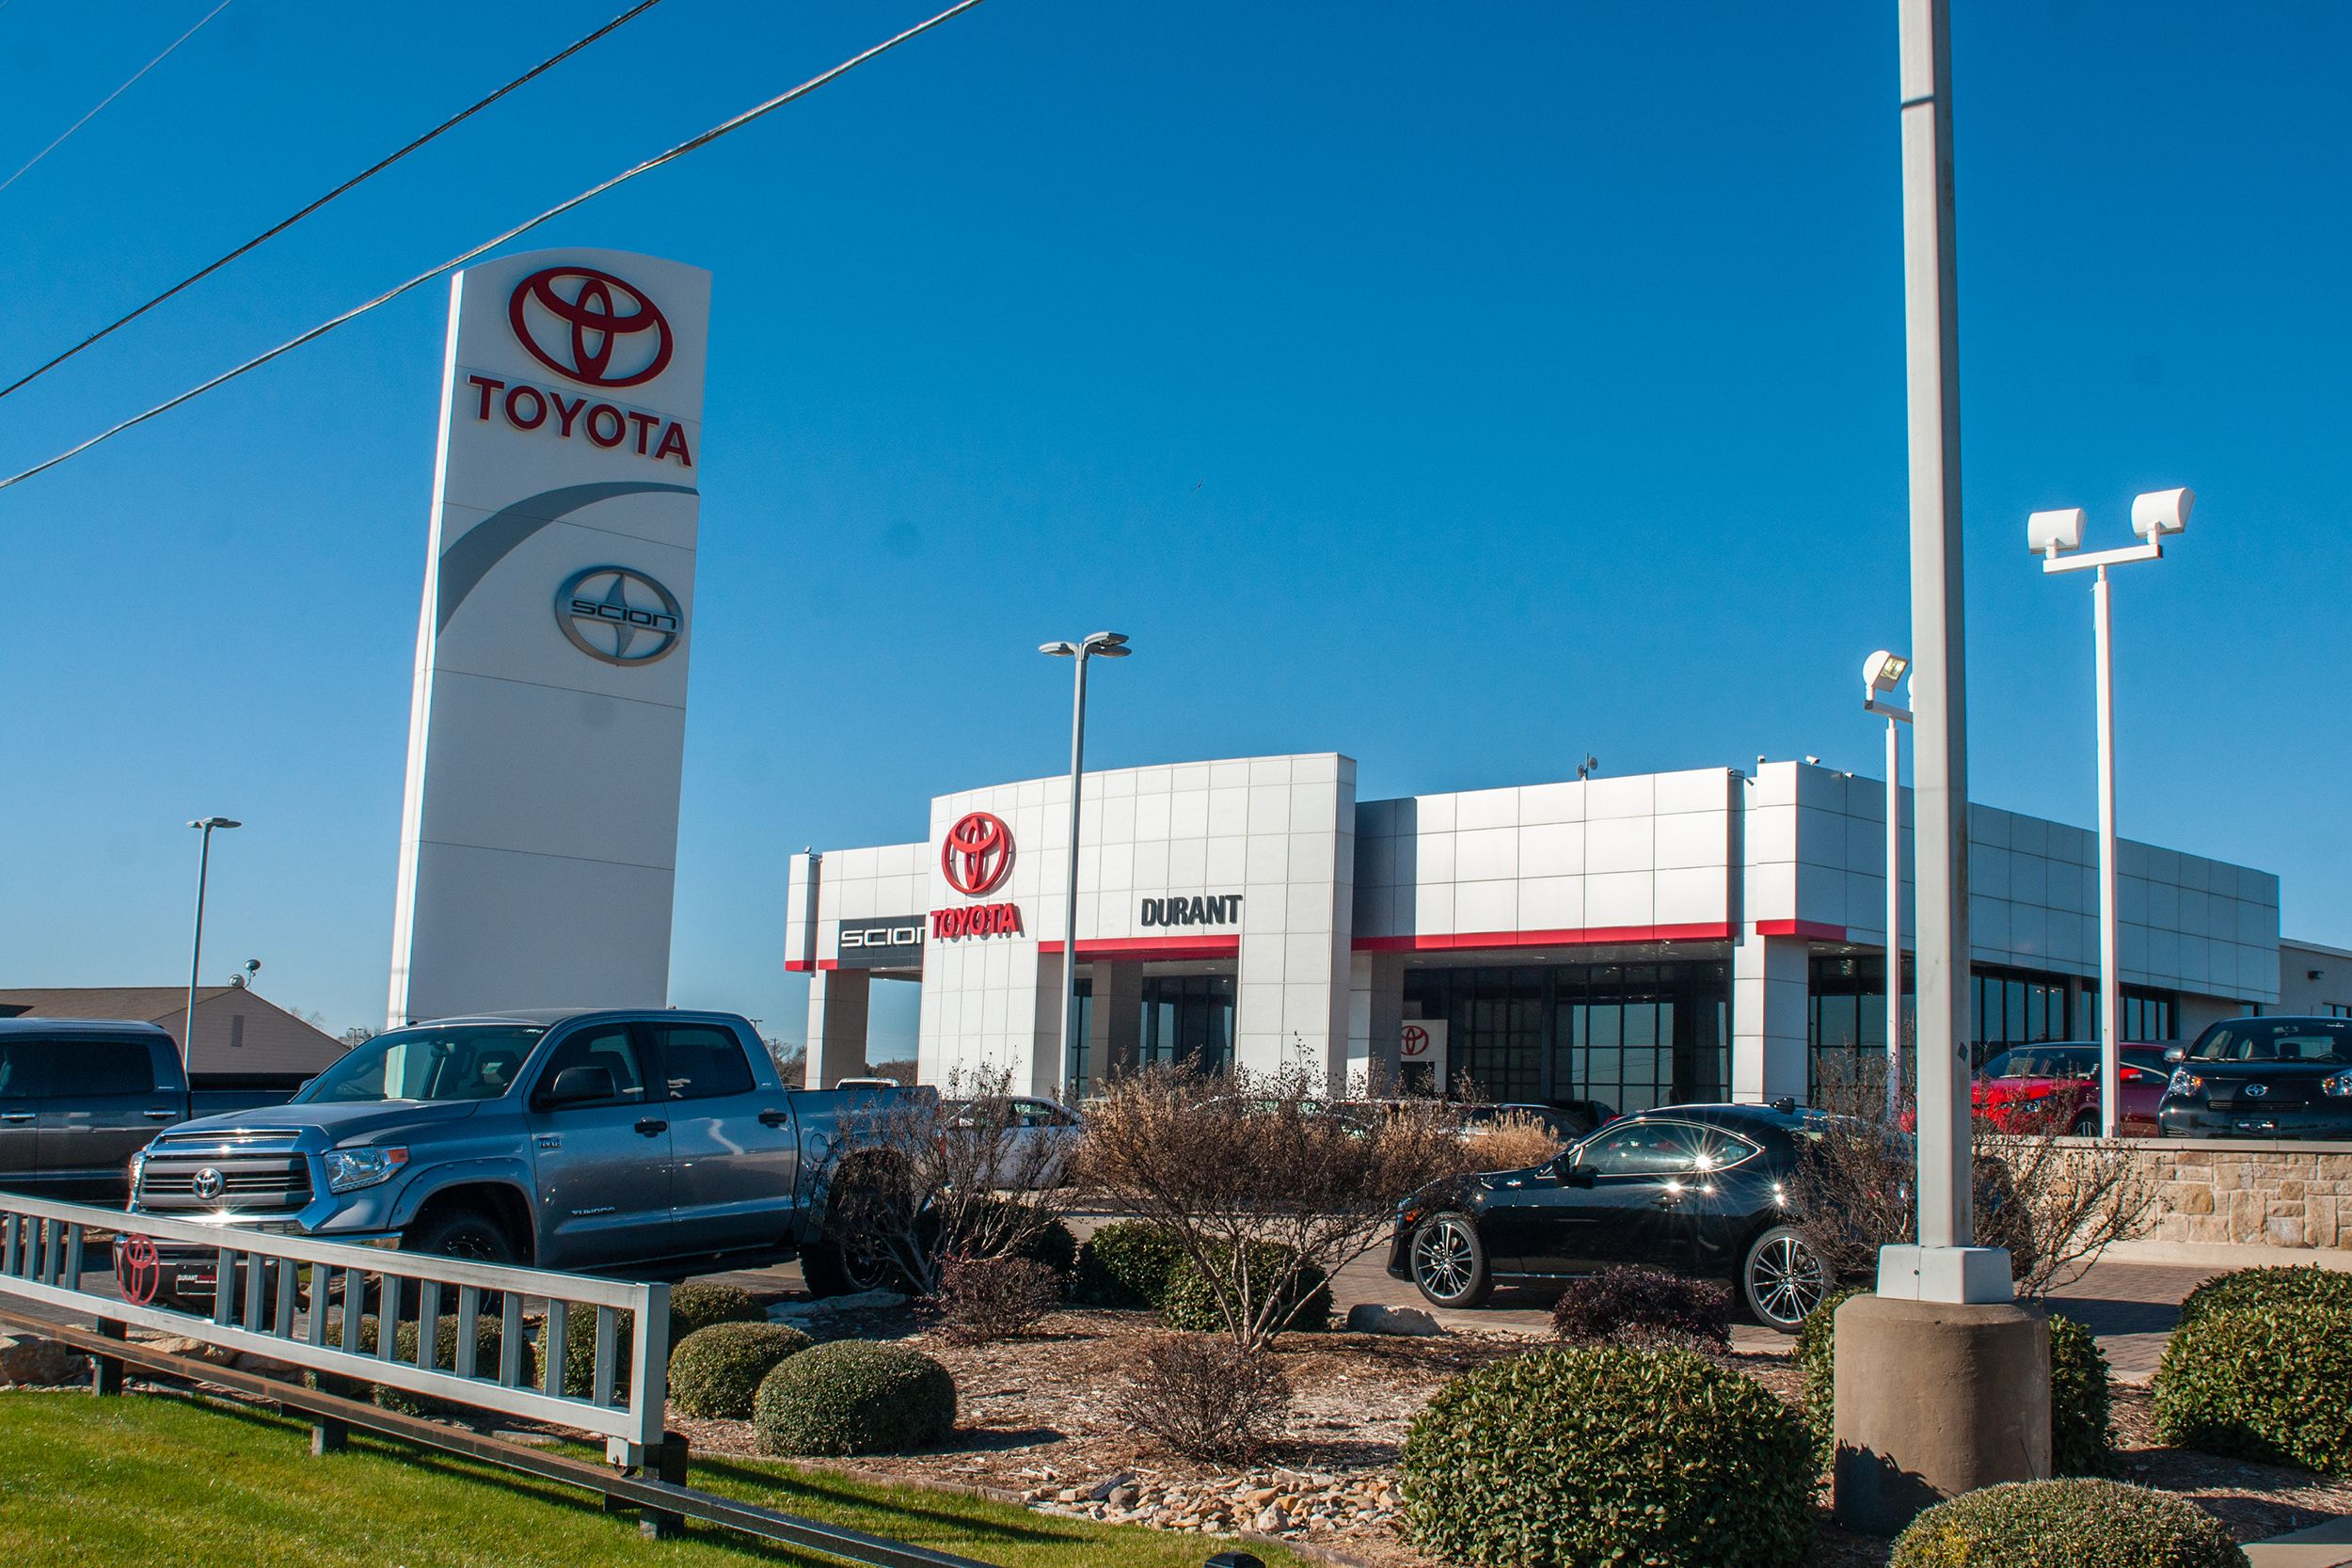 Toyota dealership serving weatherford and arlington tx durant toyota